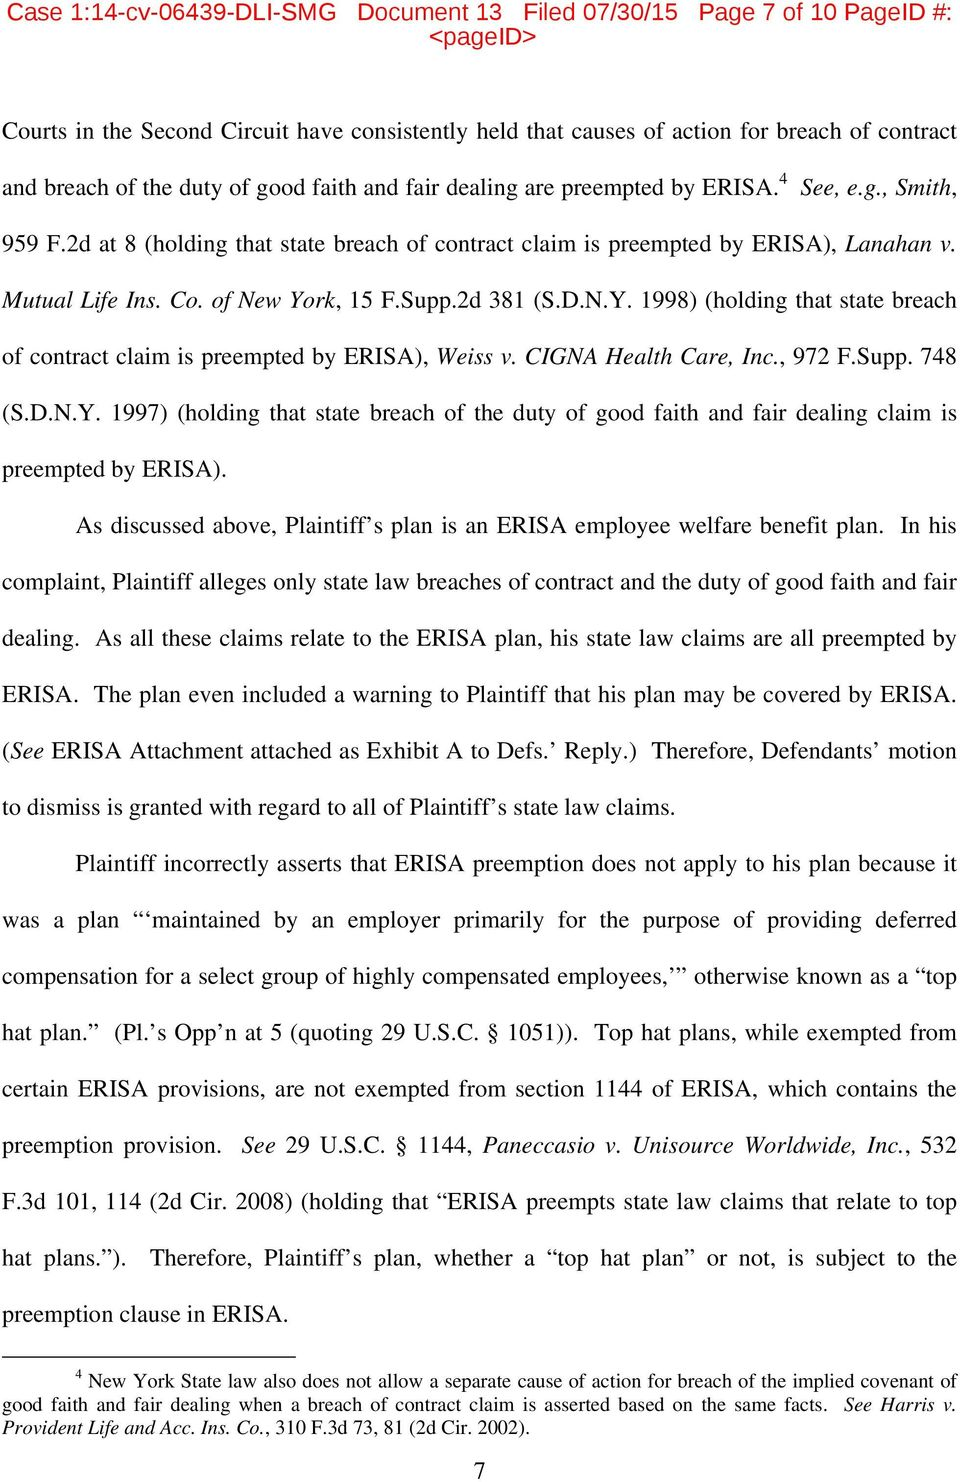 of New York, 15 F.Supp.2d 381 (S.D.N.Y. 1998) (holding that state breach of contract claim is preempted by ERISA), Weiss v. CIGNA Health Care, Inc., 972 F.Supp. 748 (S.D.N.Y. 1997) (holding that state breach of the duty of good faith and fair dealing claim is preempted by ERISA).